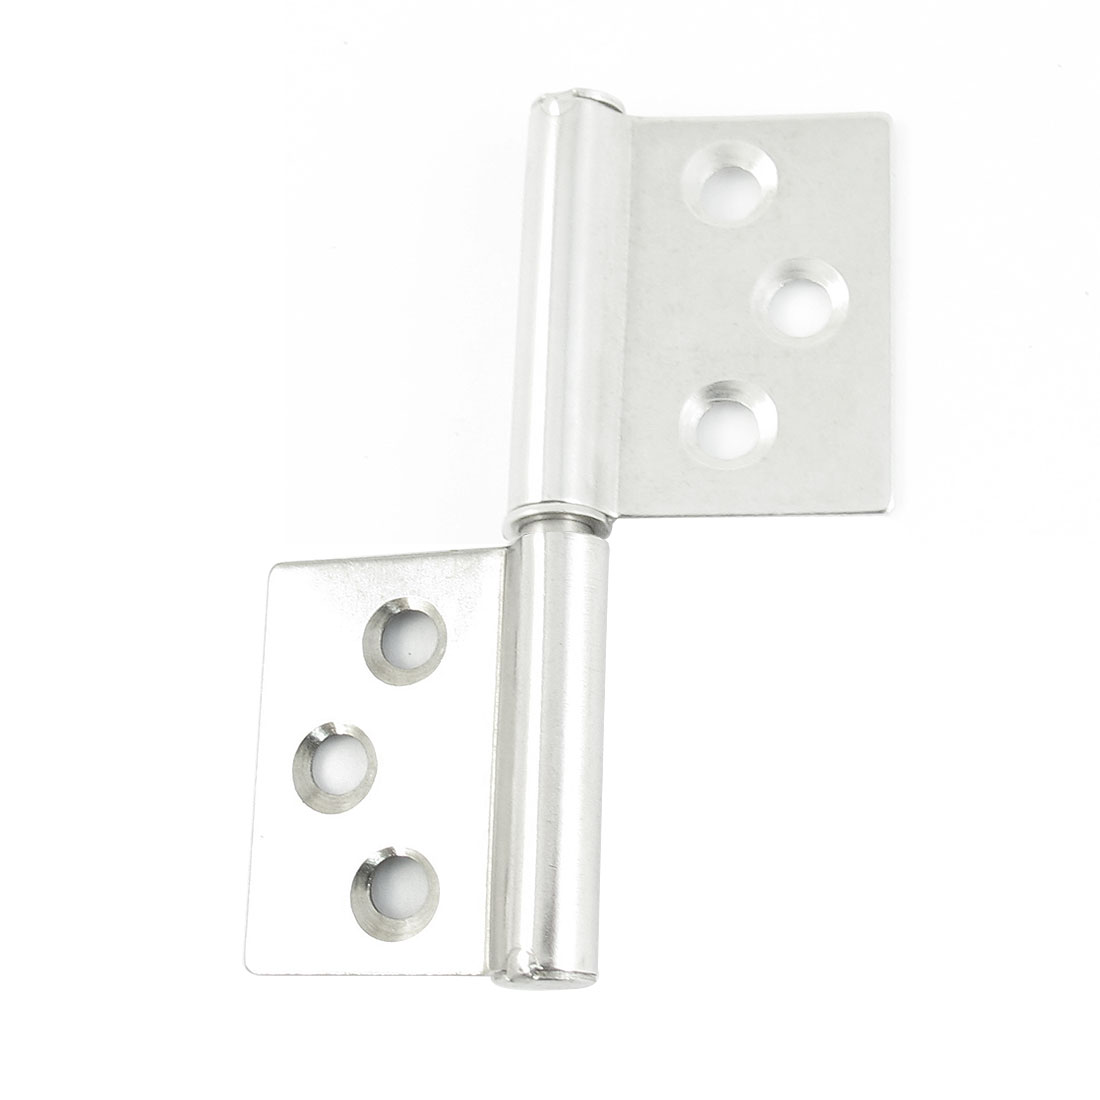 Silver Tone Metallic Window Flag Door Hinges Parts 7.5cm Long